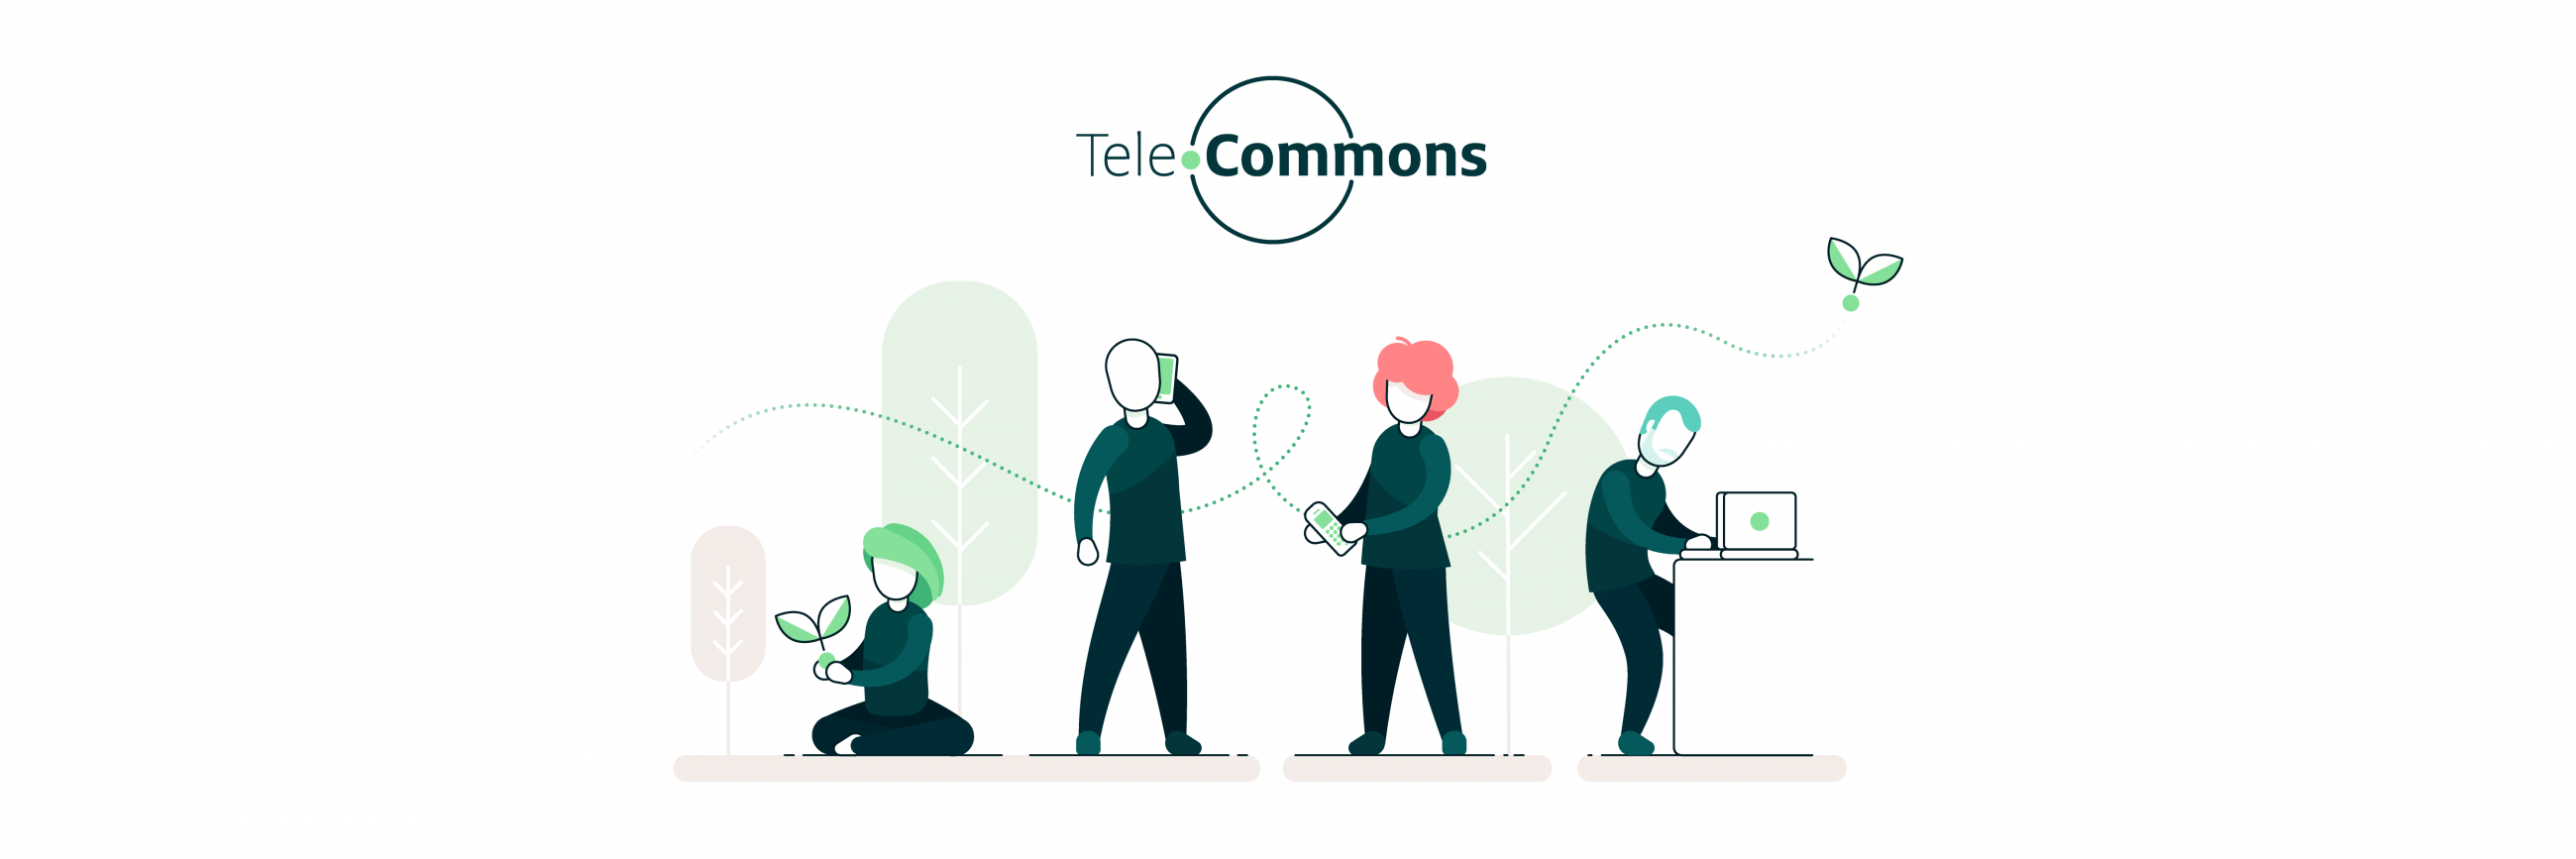 TeleCommons-KeyVisual.png